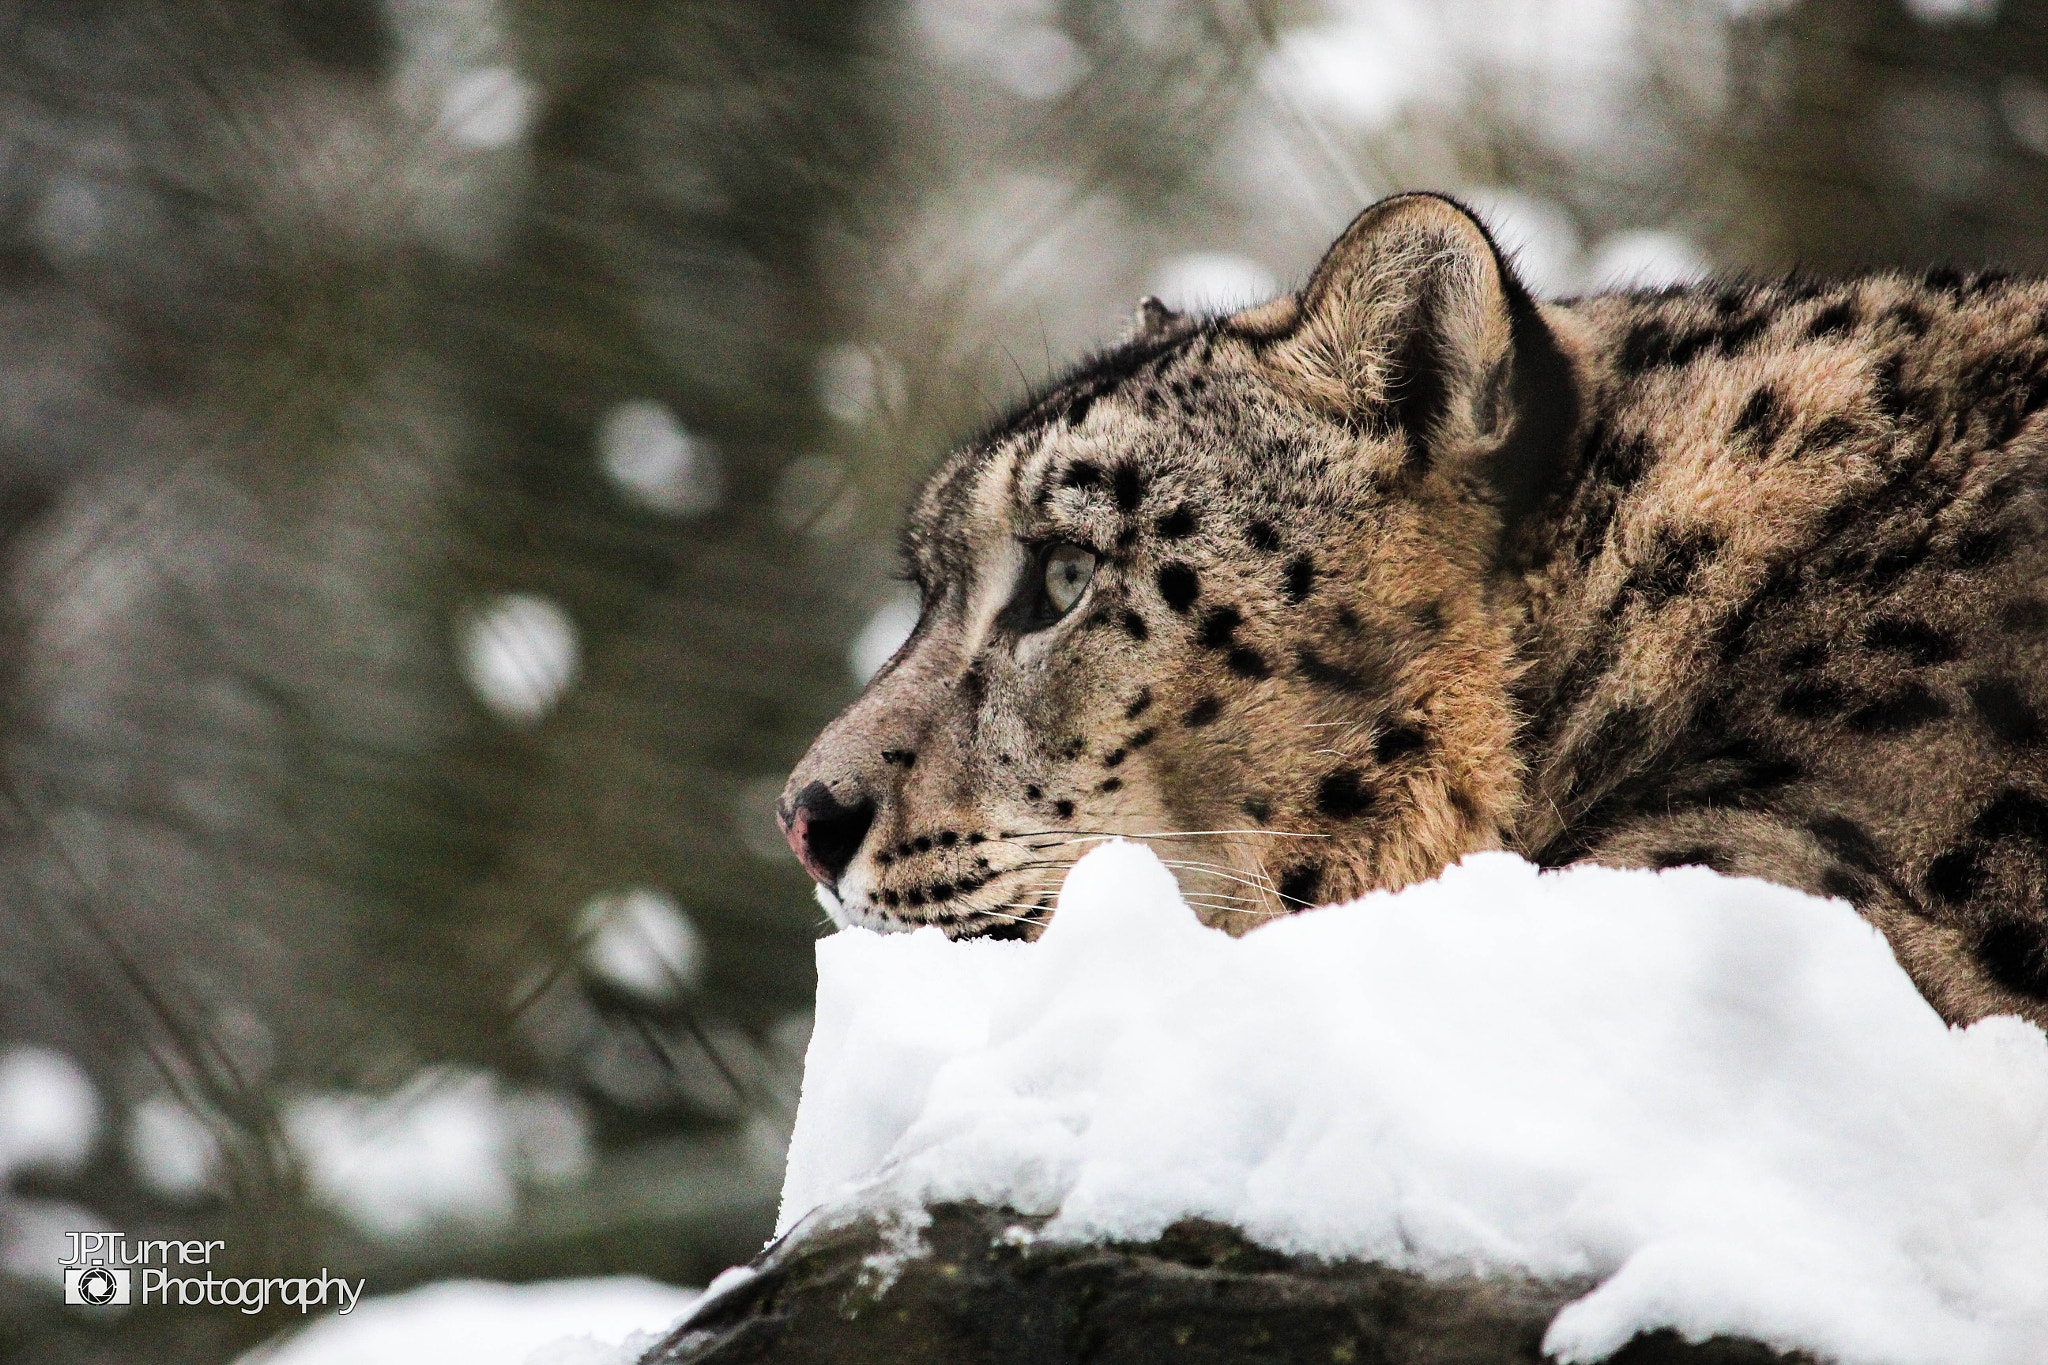 Photograph Snowy by Jona Turner on 500px